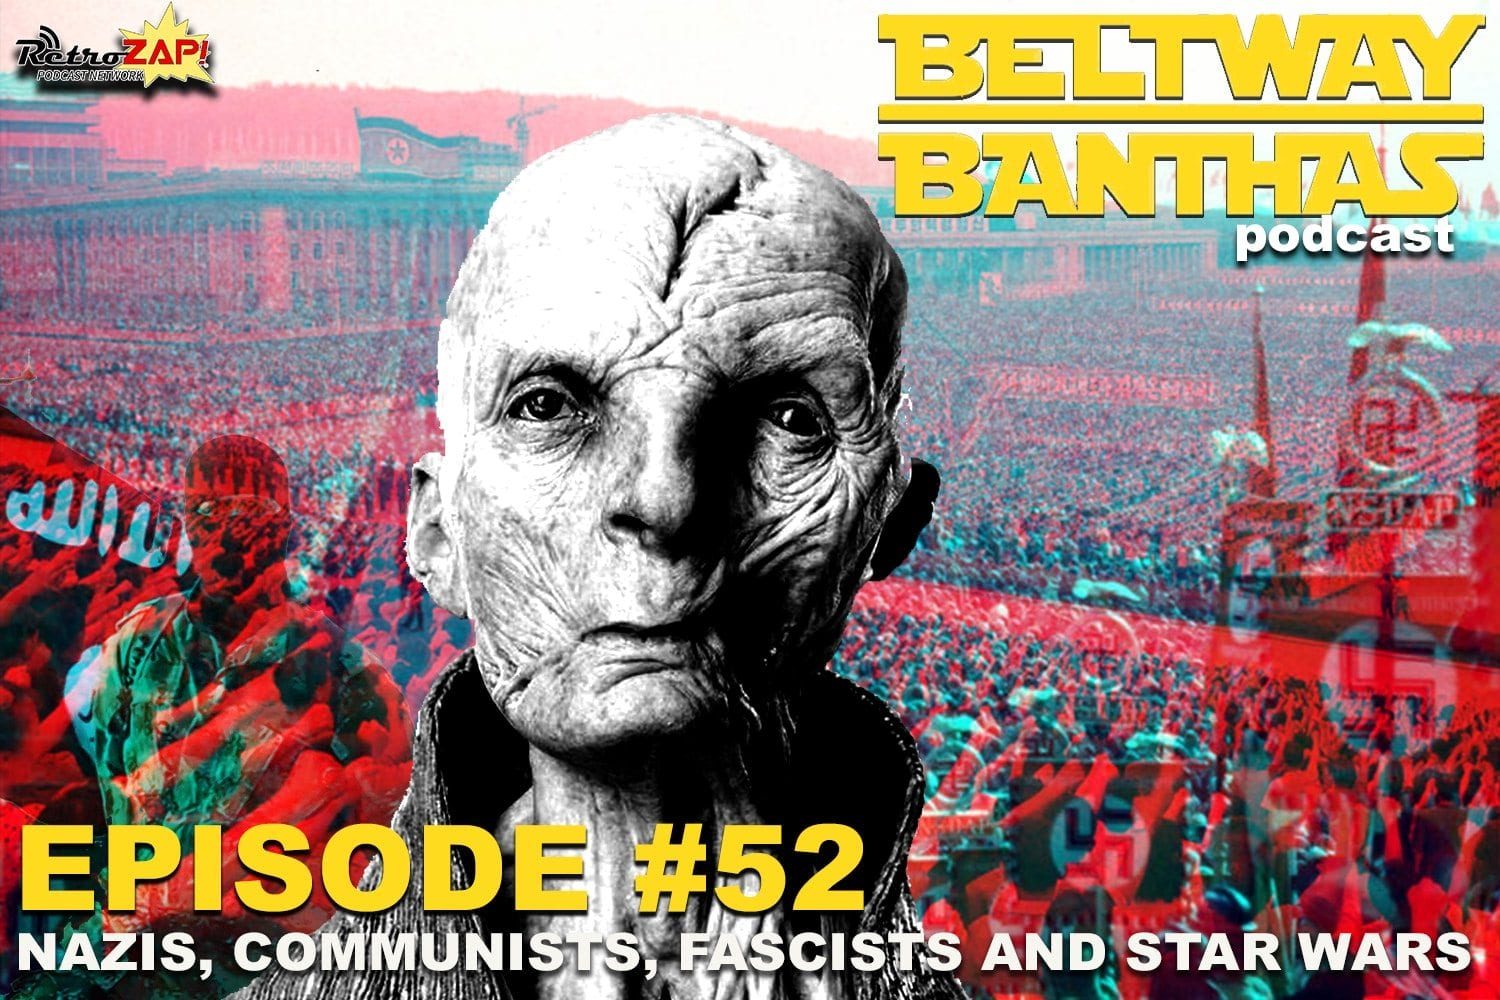 Beltway Banthas #52: Nazis, Communists, Fascists, and Star Wars